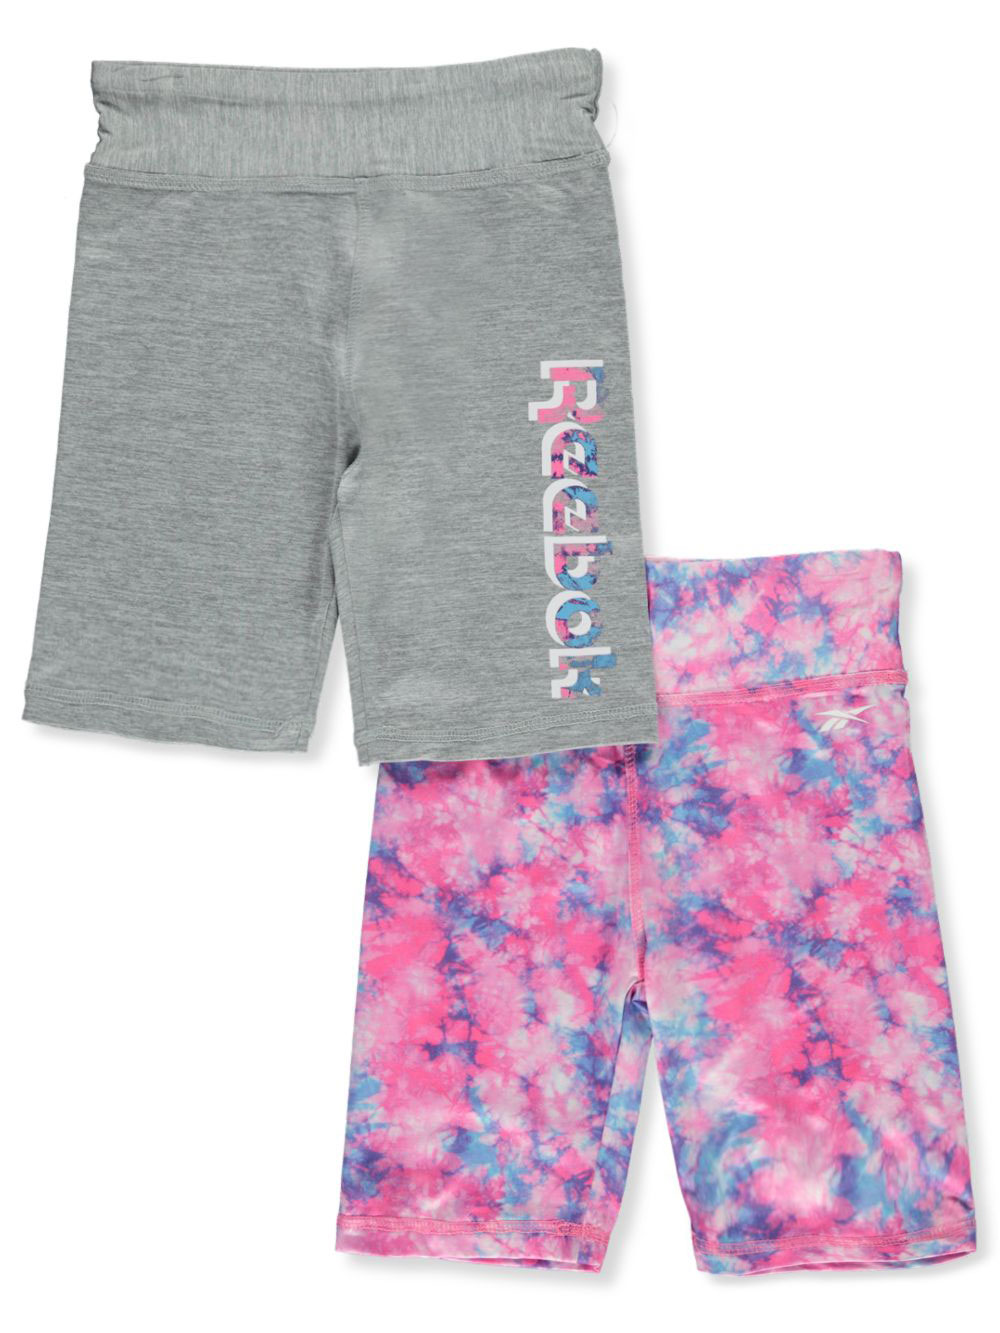 Girls' 2-Pack Bike Shorts Outfit